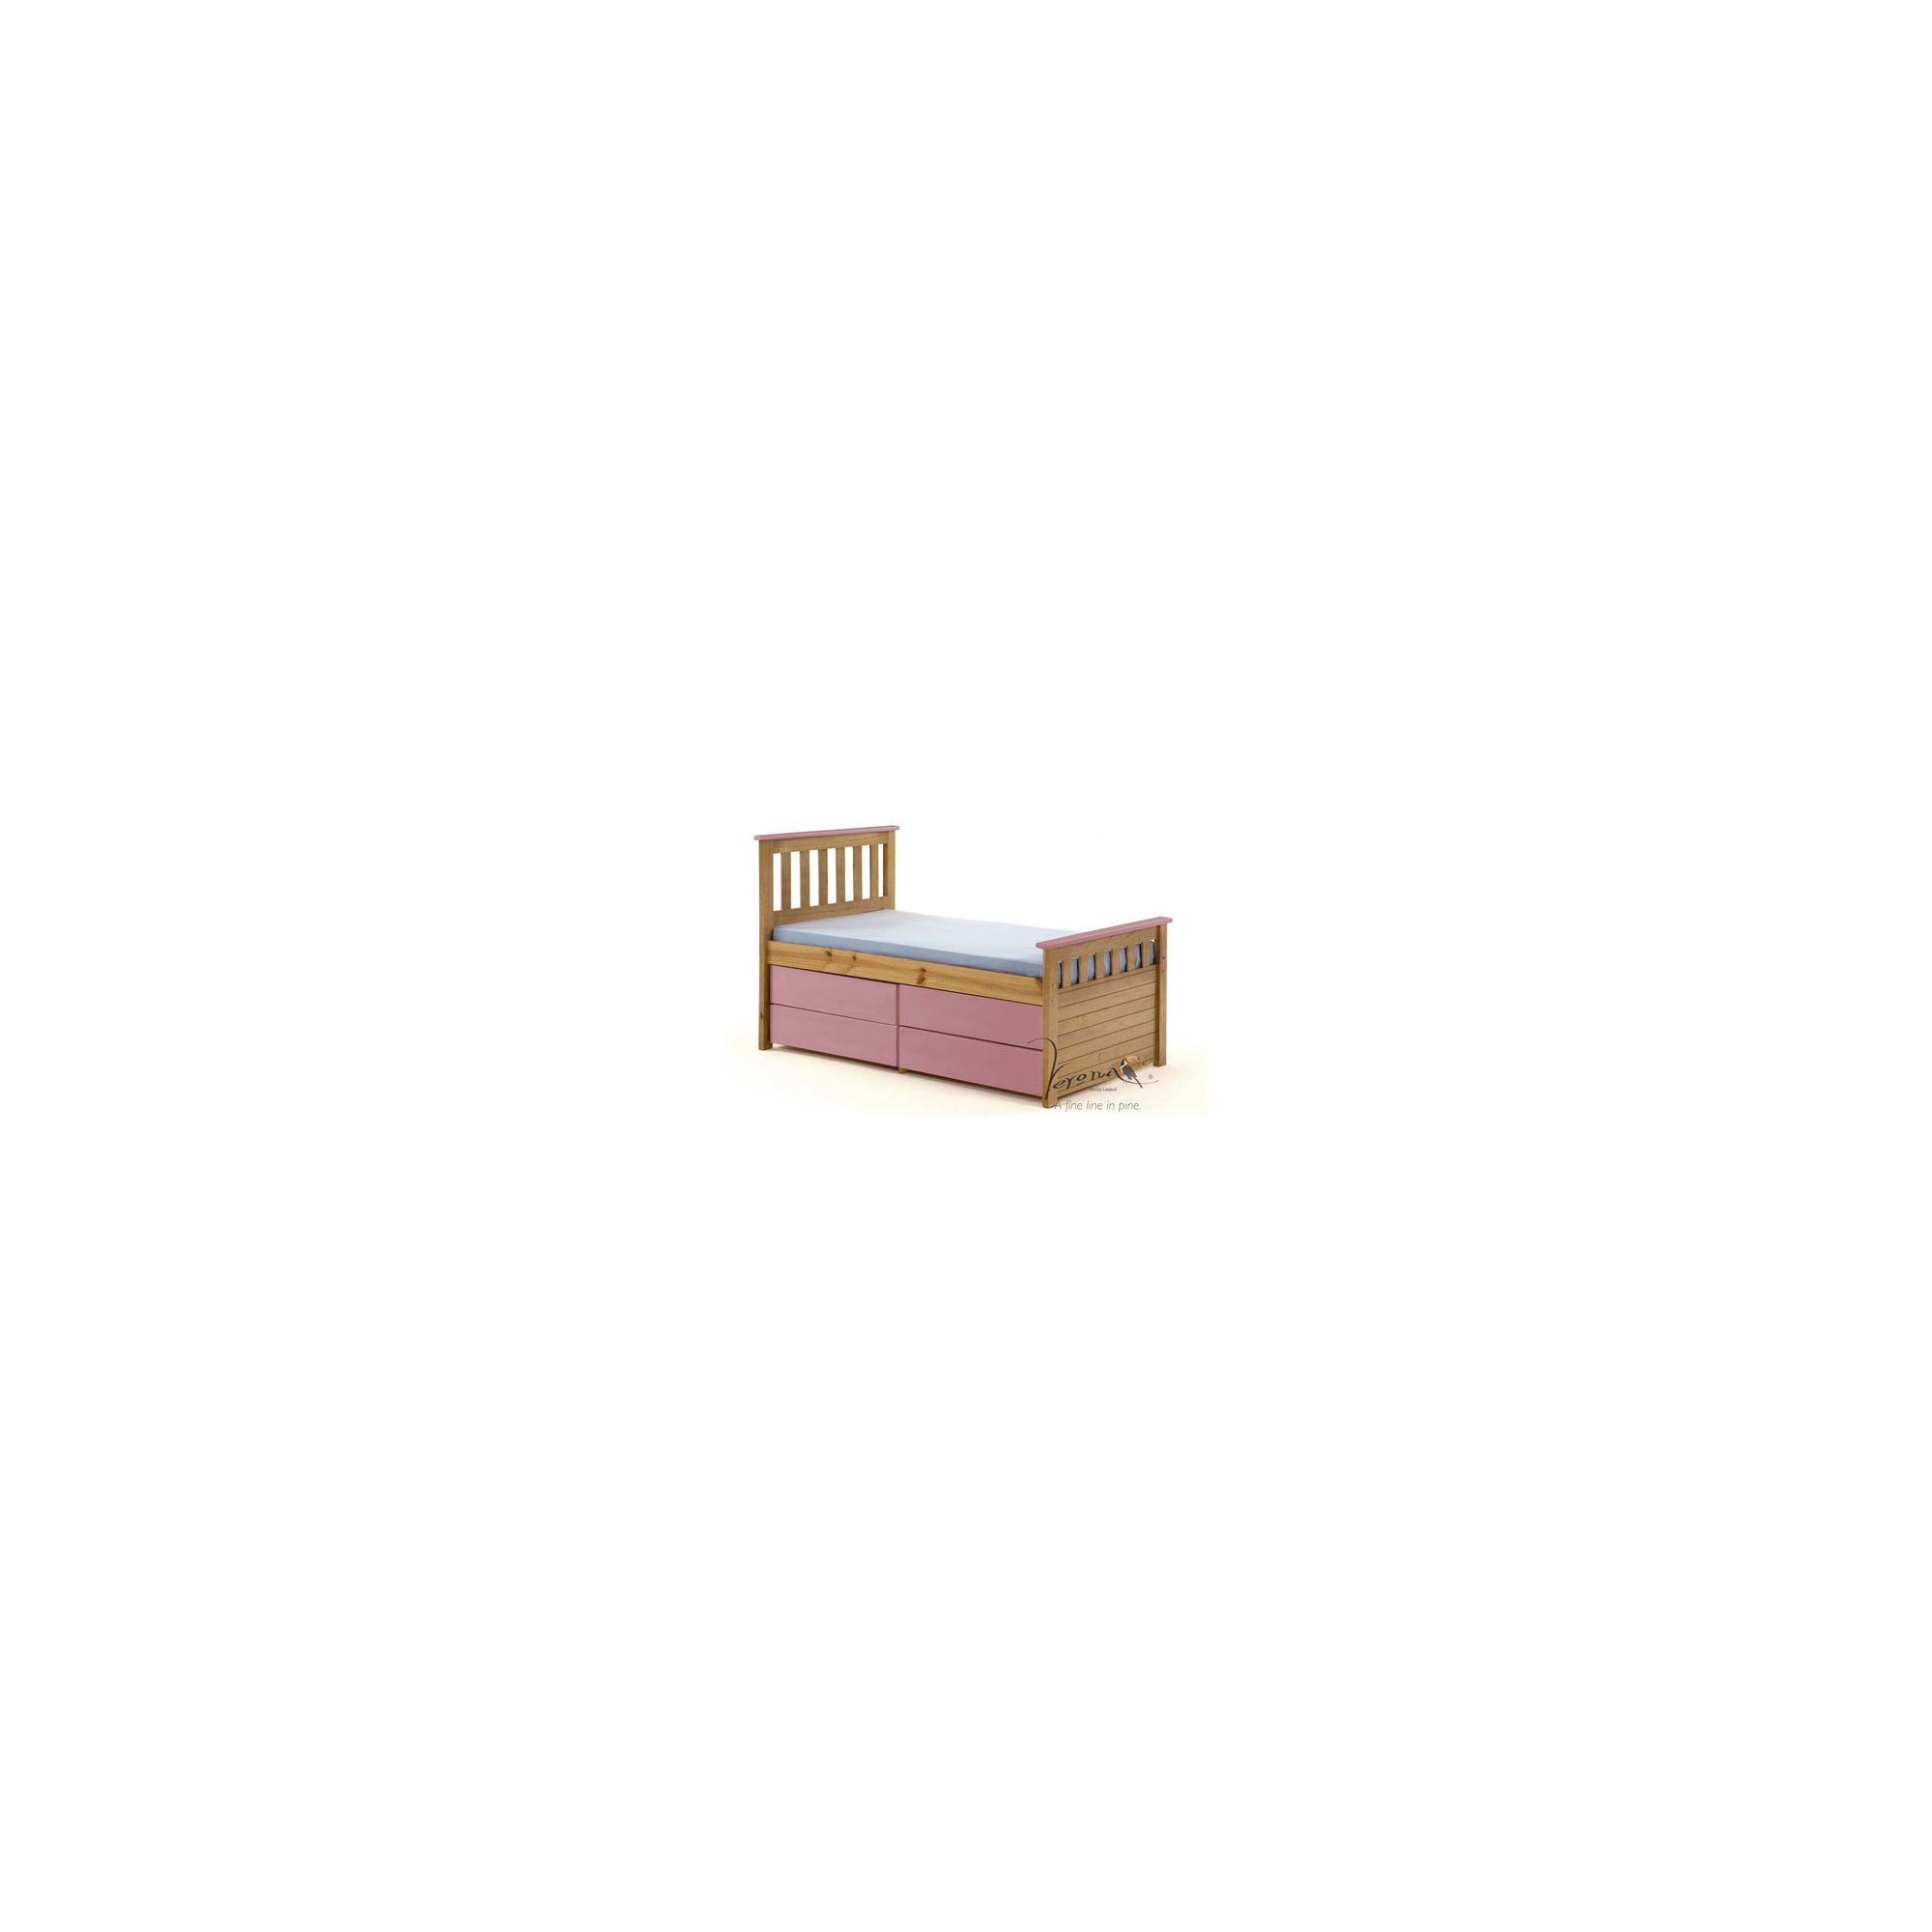 Verona Ferrara Kids Captains Bed with Underbed Storage - Antique Pink at Tescos Direct